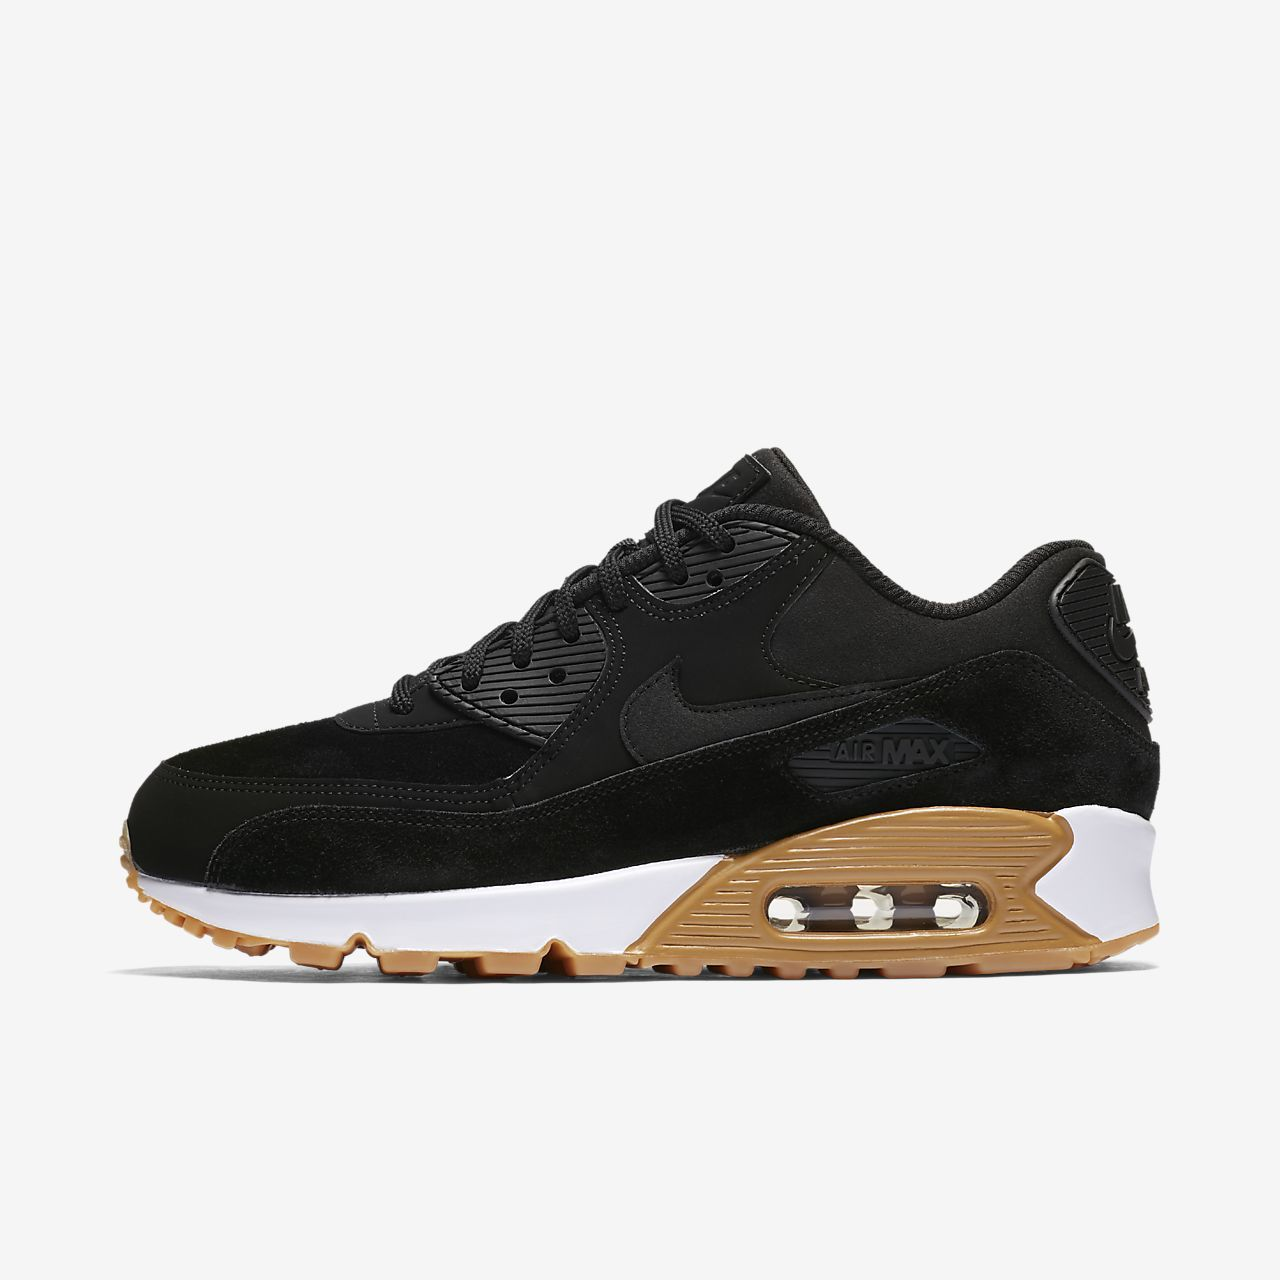 Nike Air Max 90 SE Women\'s Shoe | Christmas wishlist | Pinterest ...